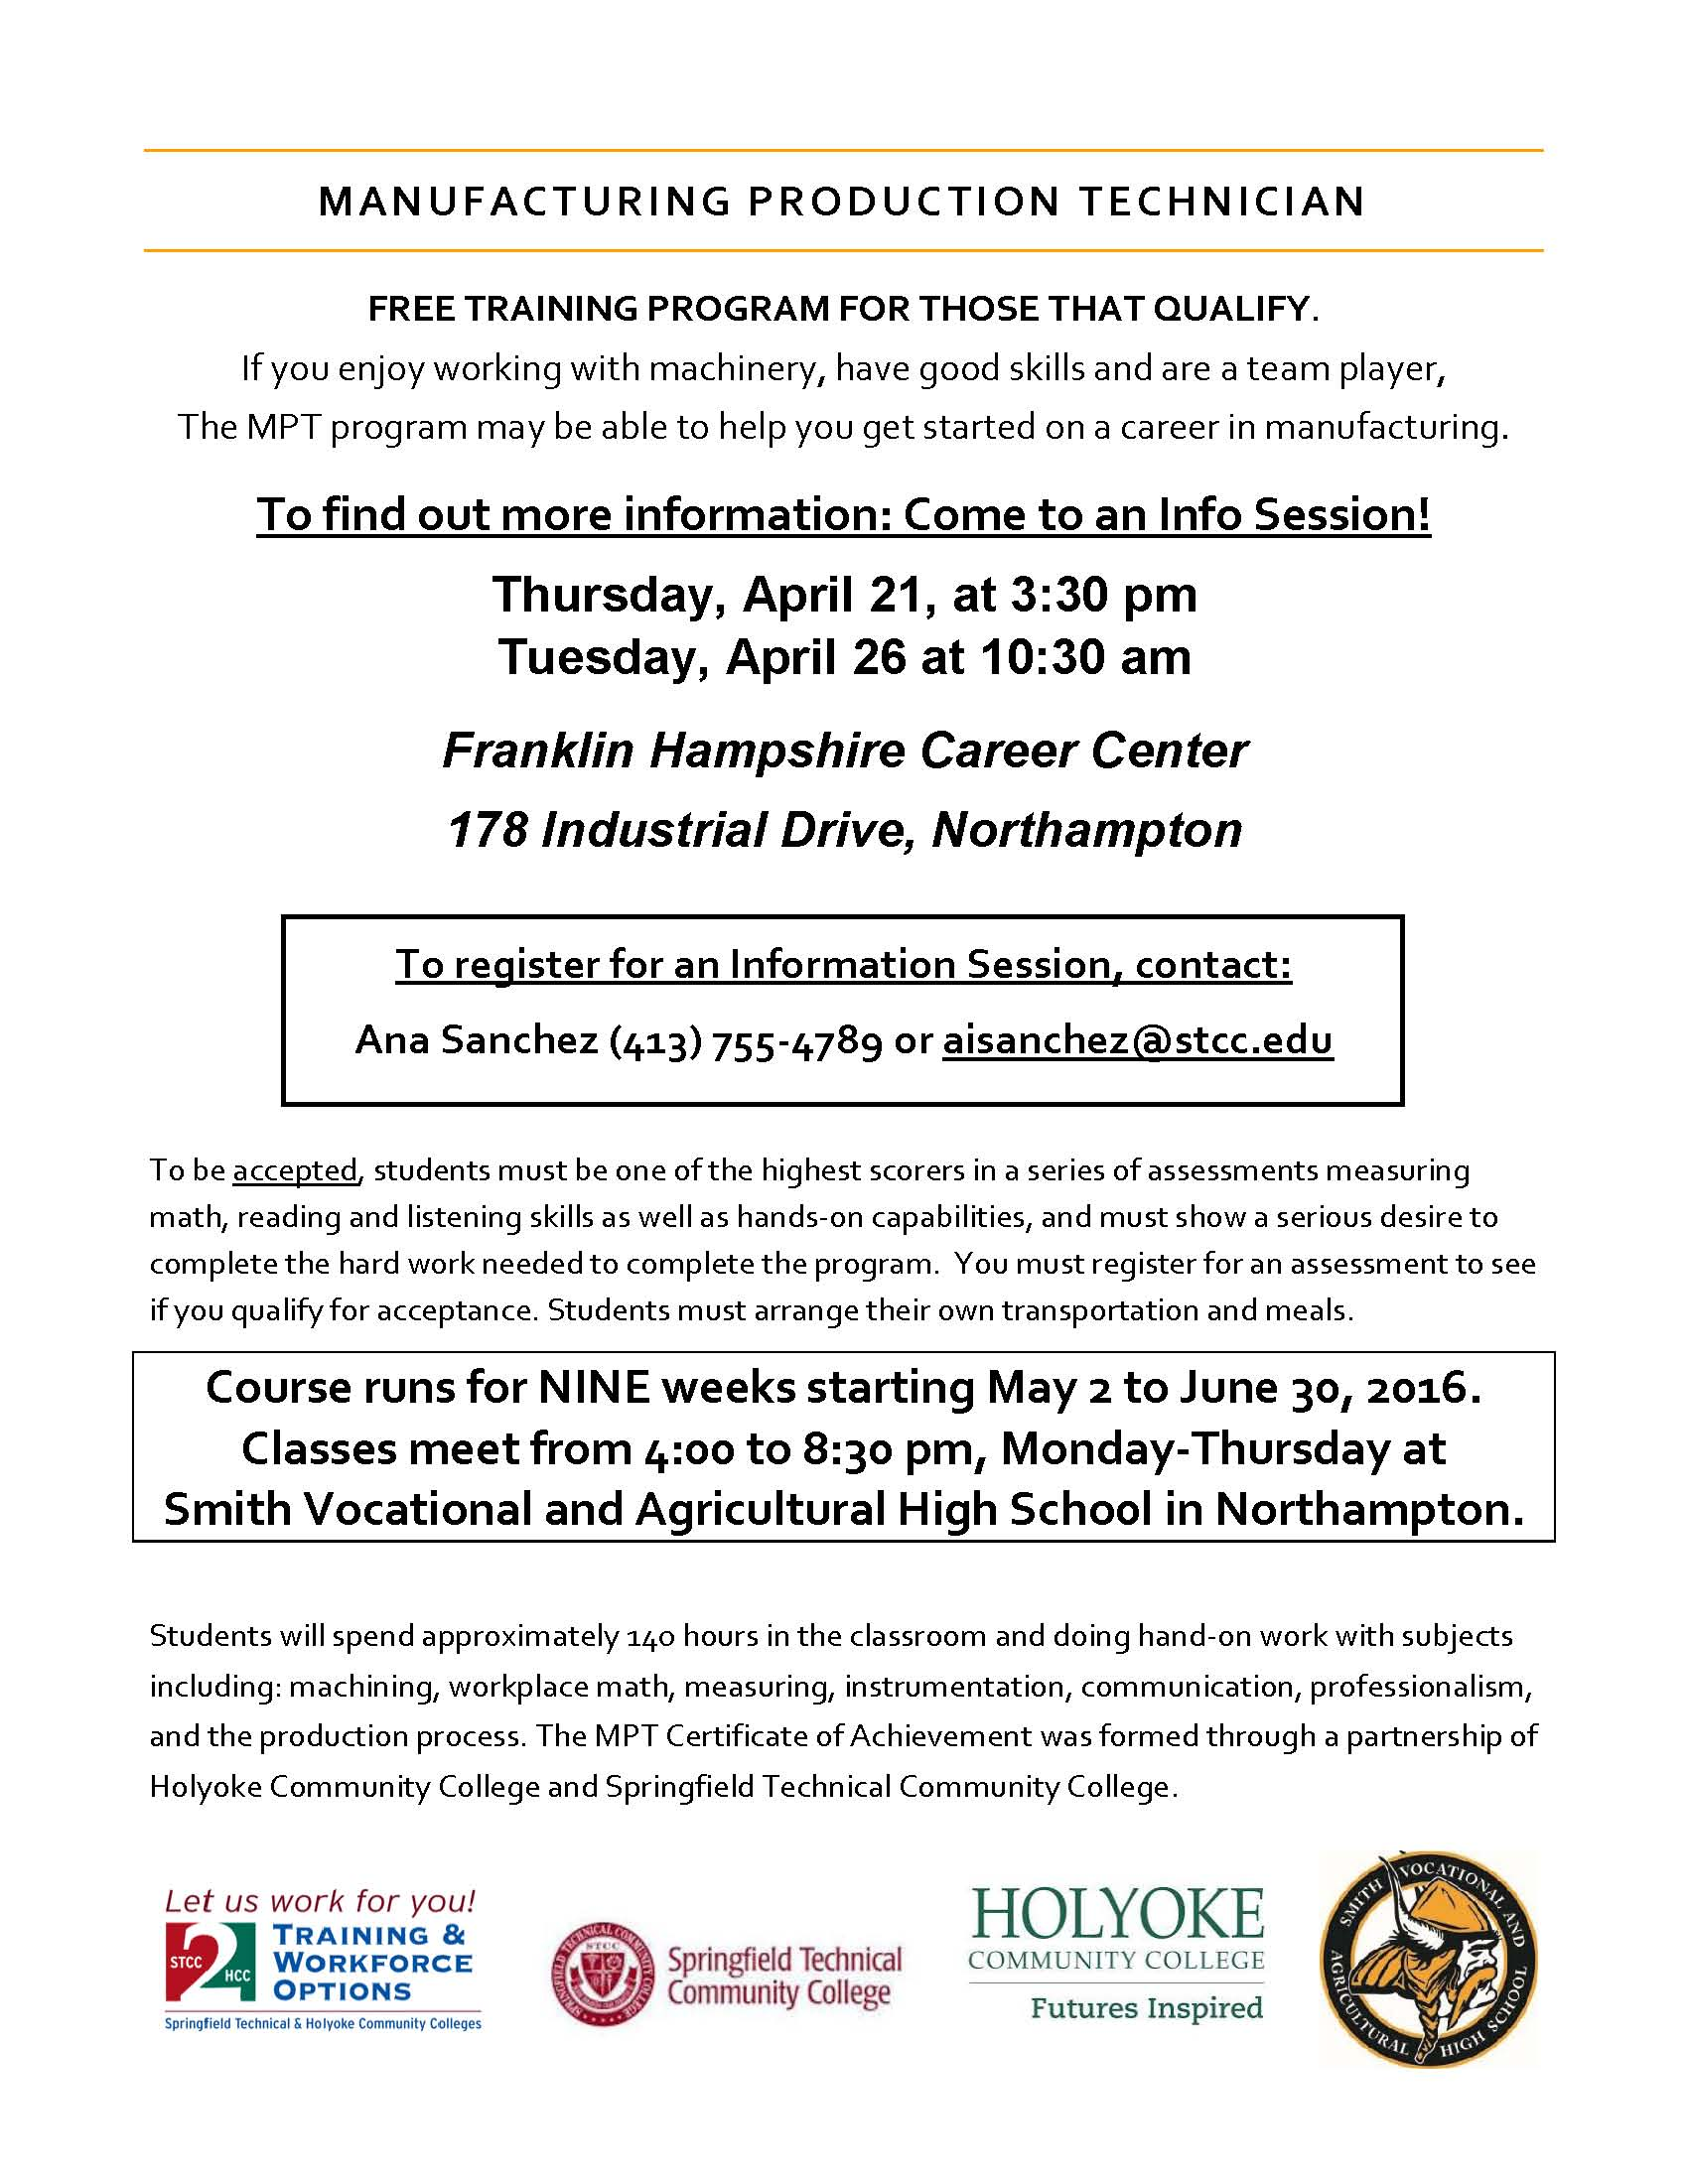 MPT Flyer - May 2 Start Date